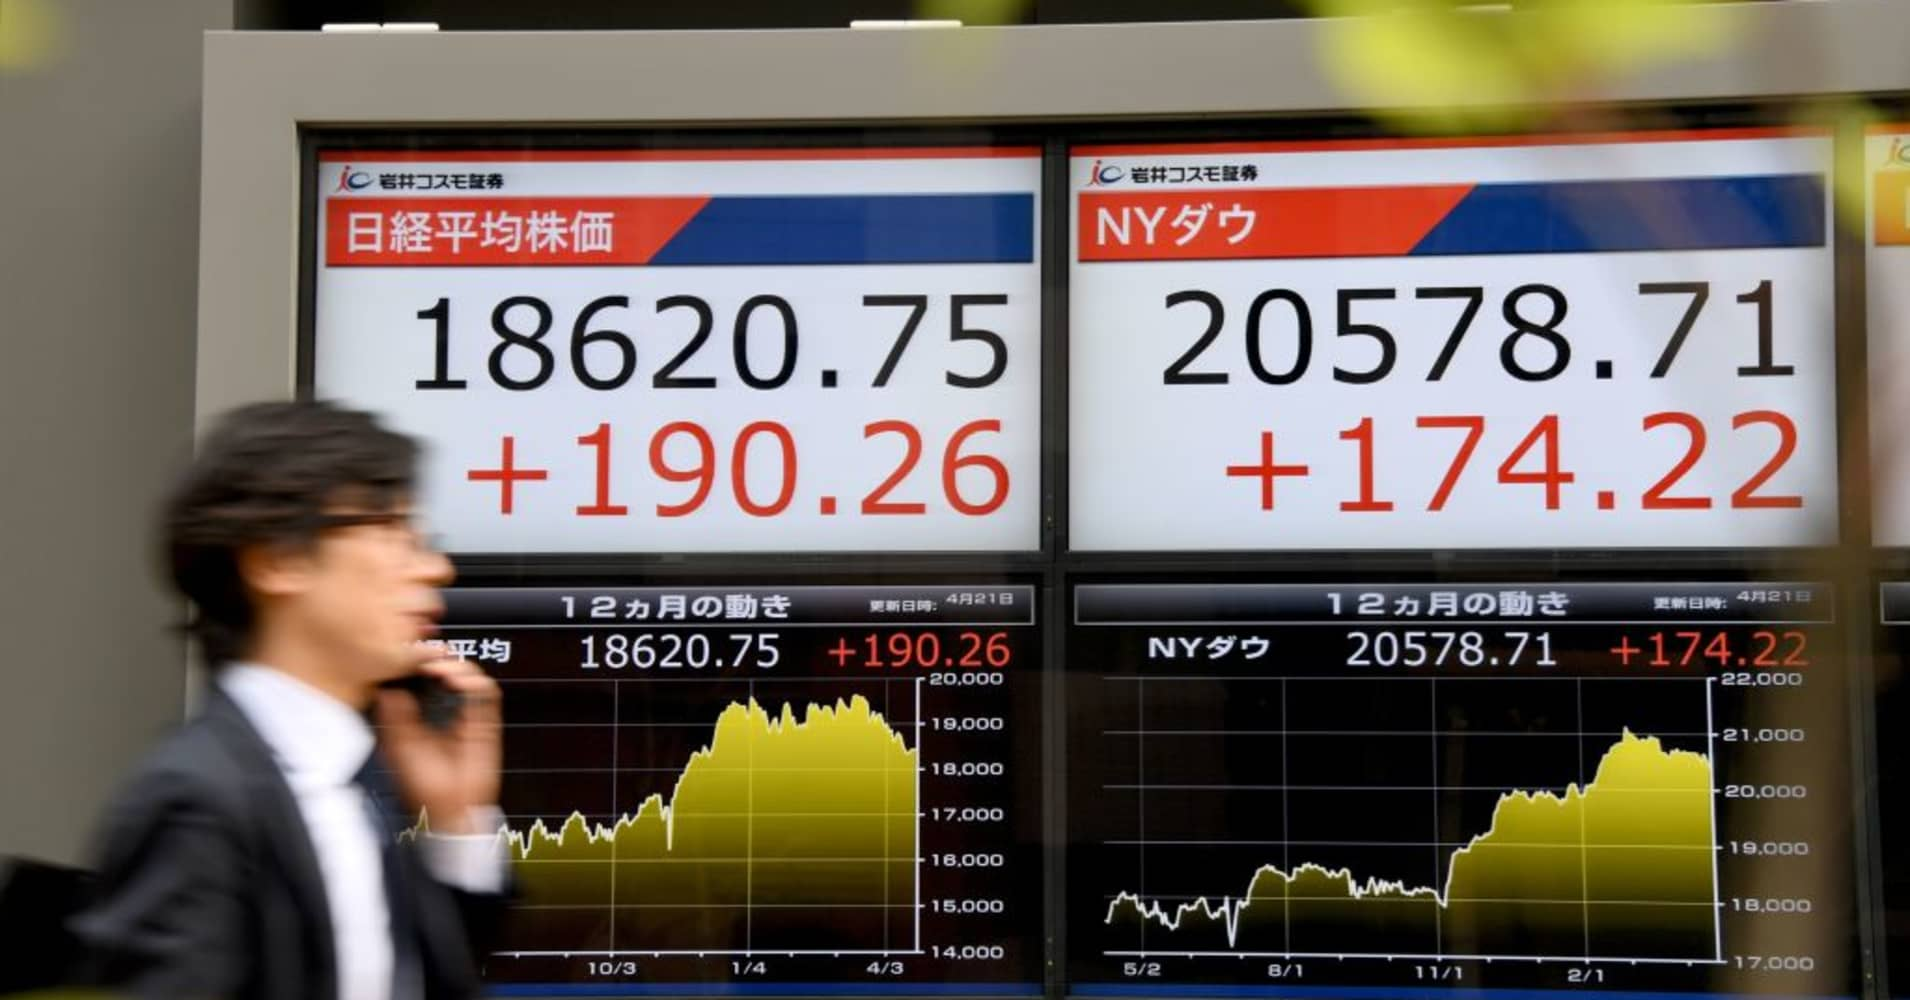 Asian indexes mixed after first round of French elections; Nikkei up 1.4%, China stocks fall